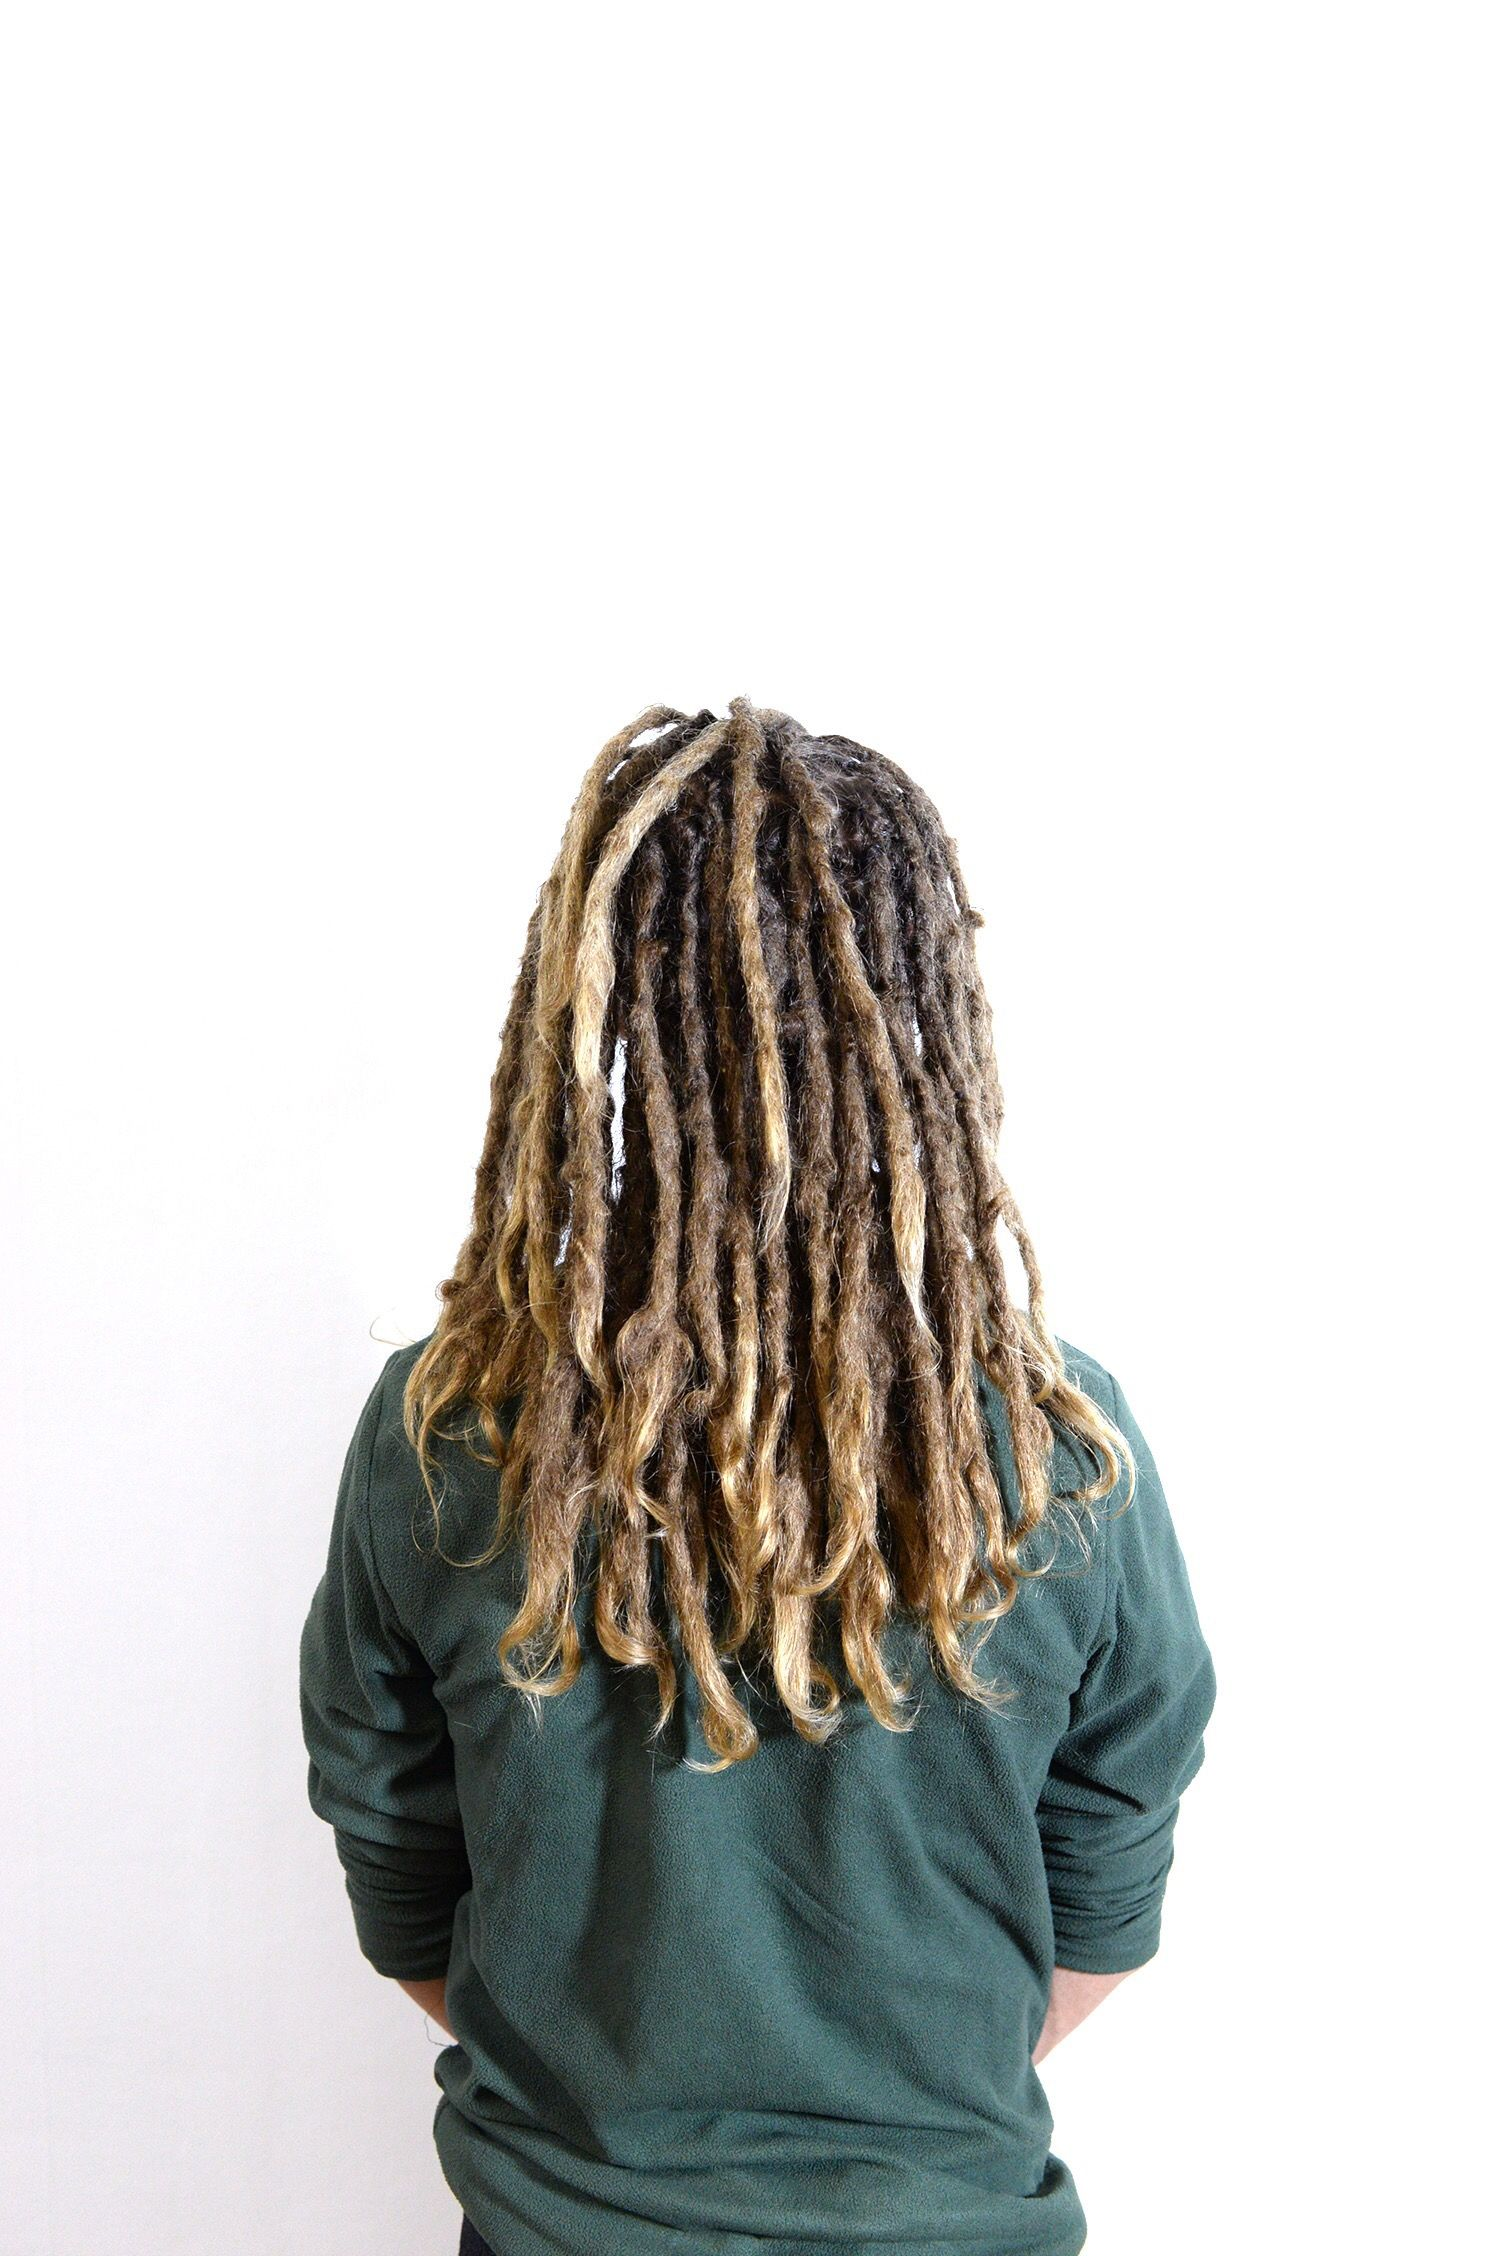 This i Elias, he has been a dreadhead for a few years now. It was time for some dreadlock maintenance to get his dreadlocks nice and tidy.  I really like how the tips of his dreadlocks makes that nice curl